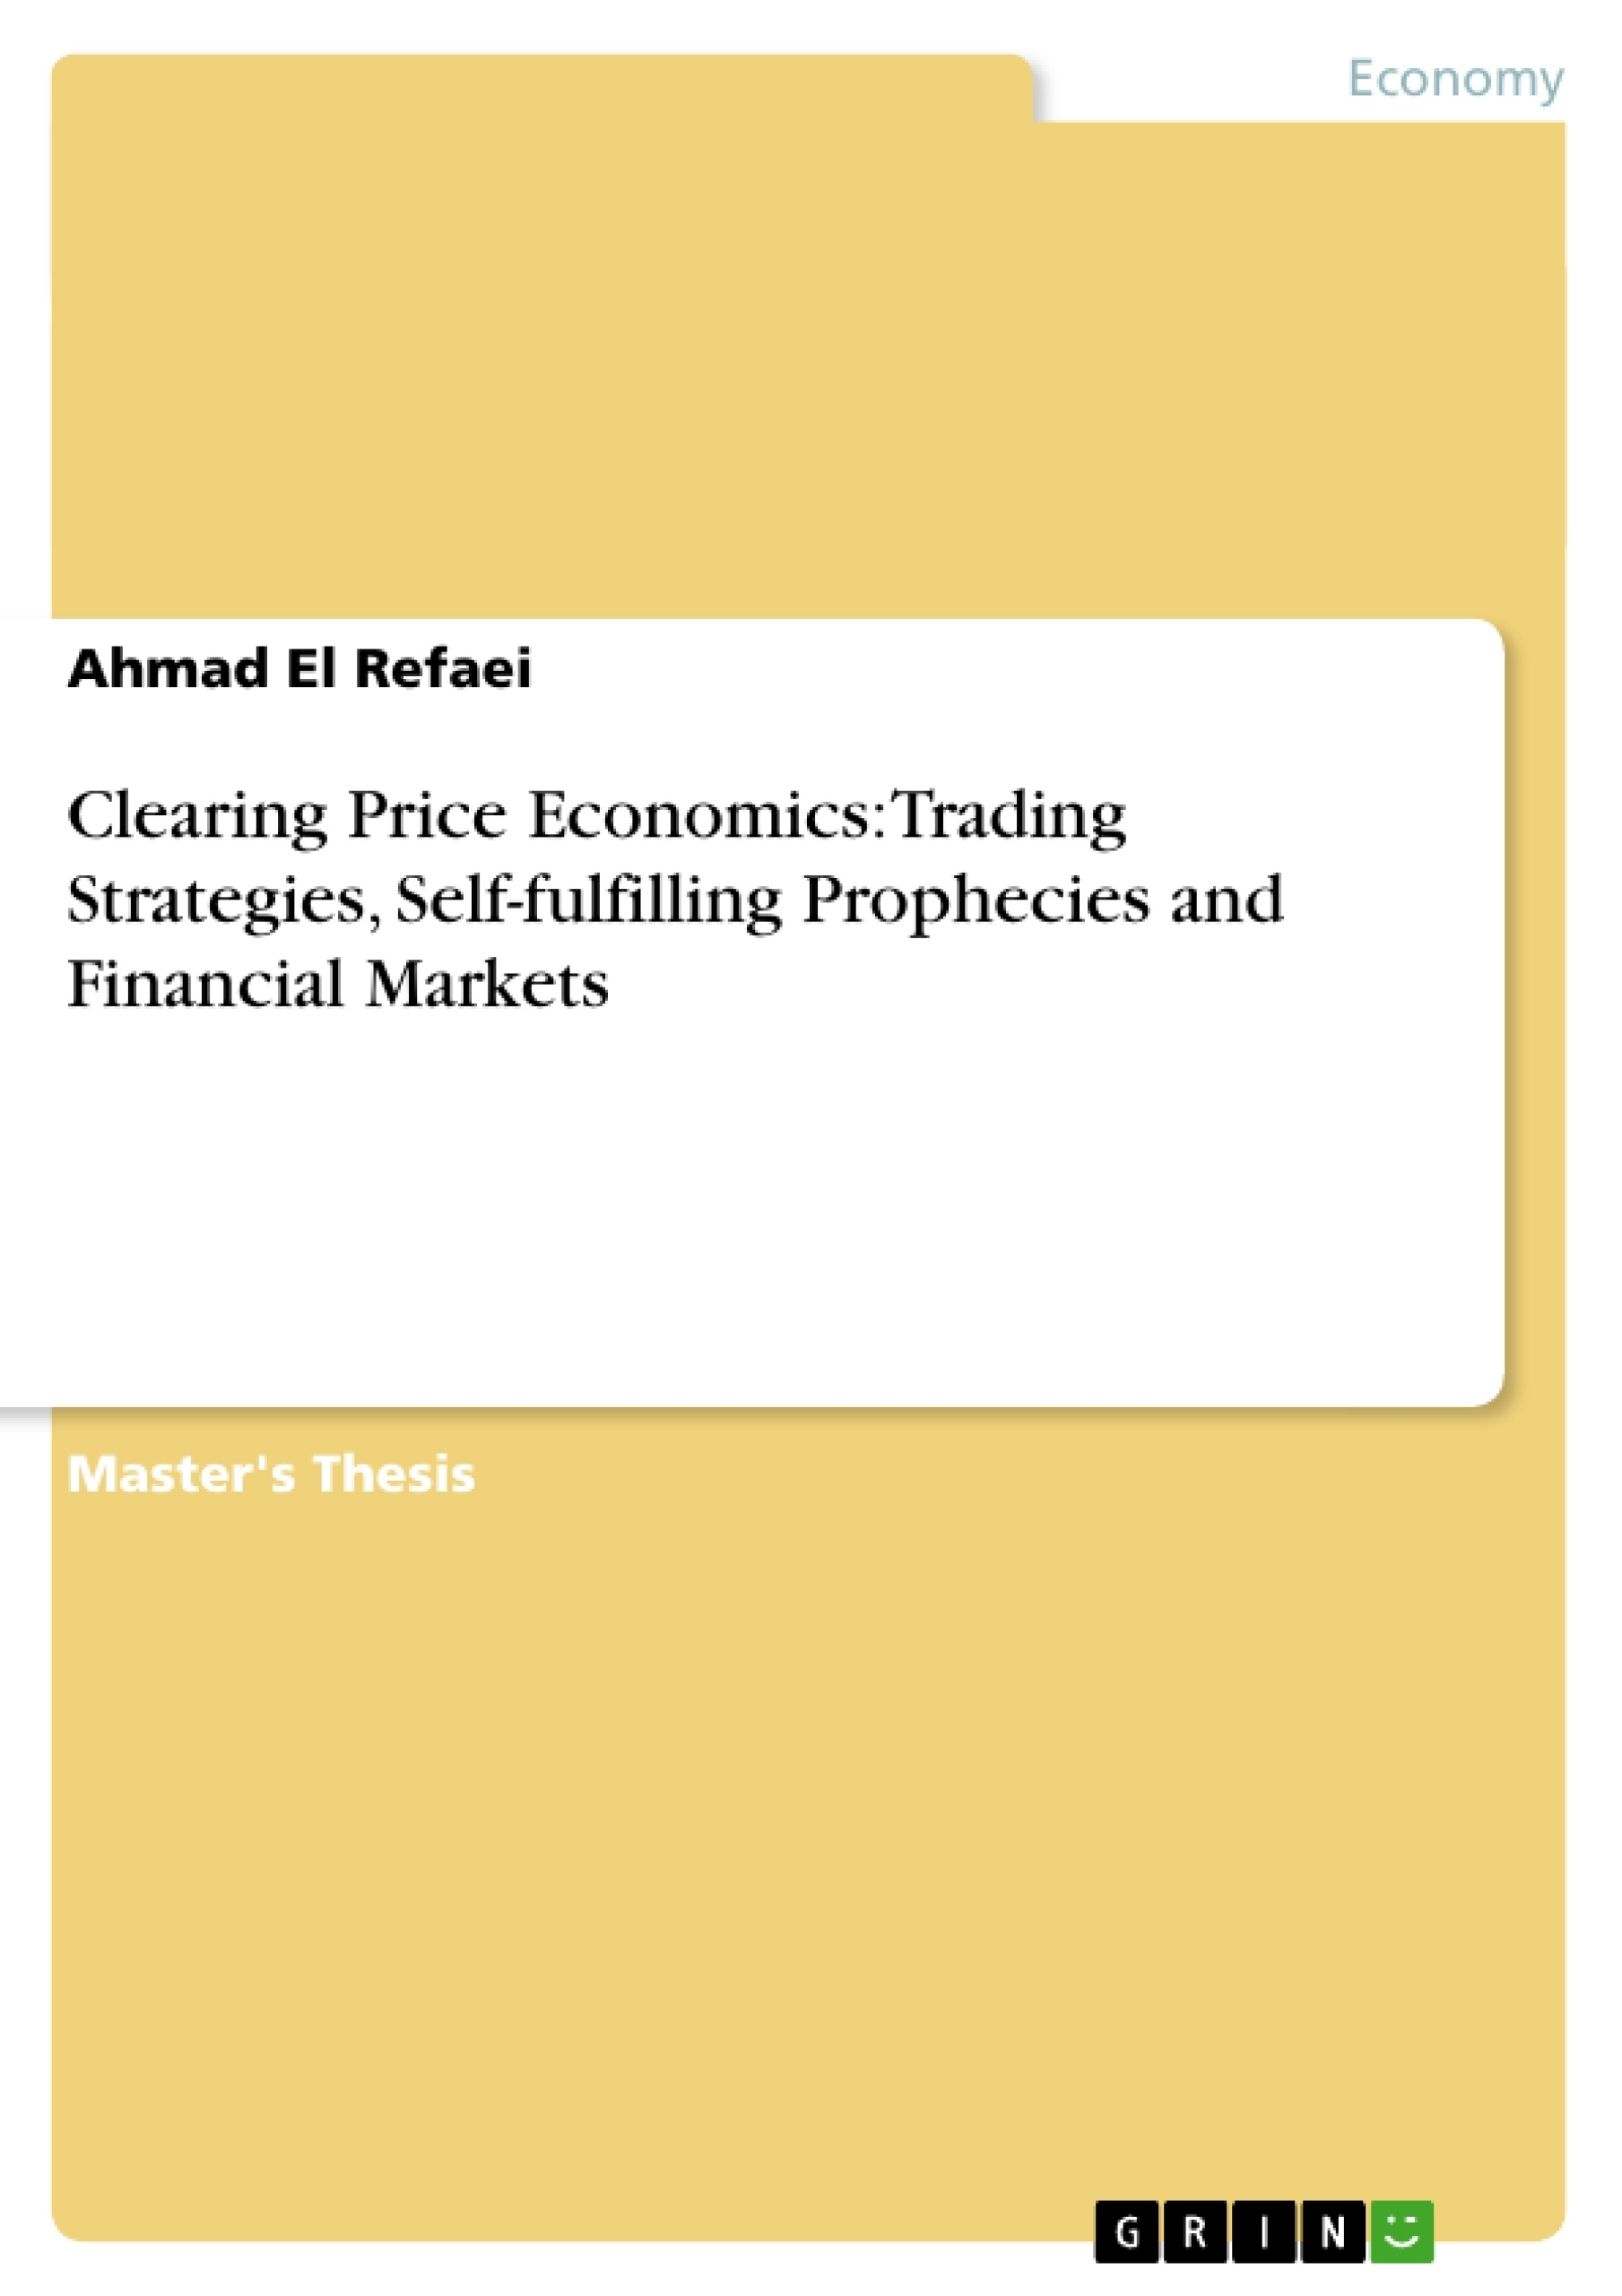 Title: Clearing Price Economics: Trading Strategies, Self-fulfilling Prophecies and Financial Markets